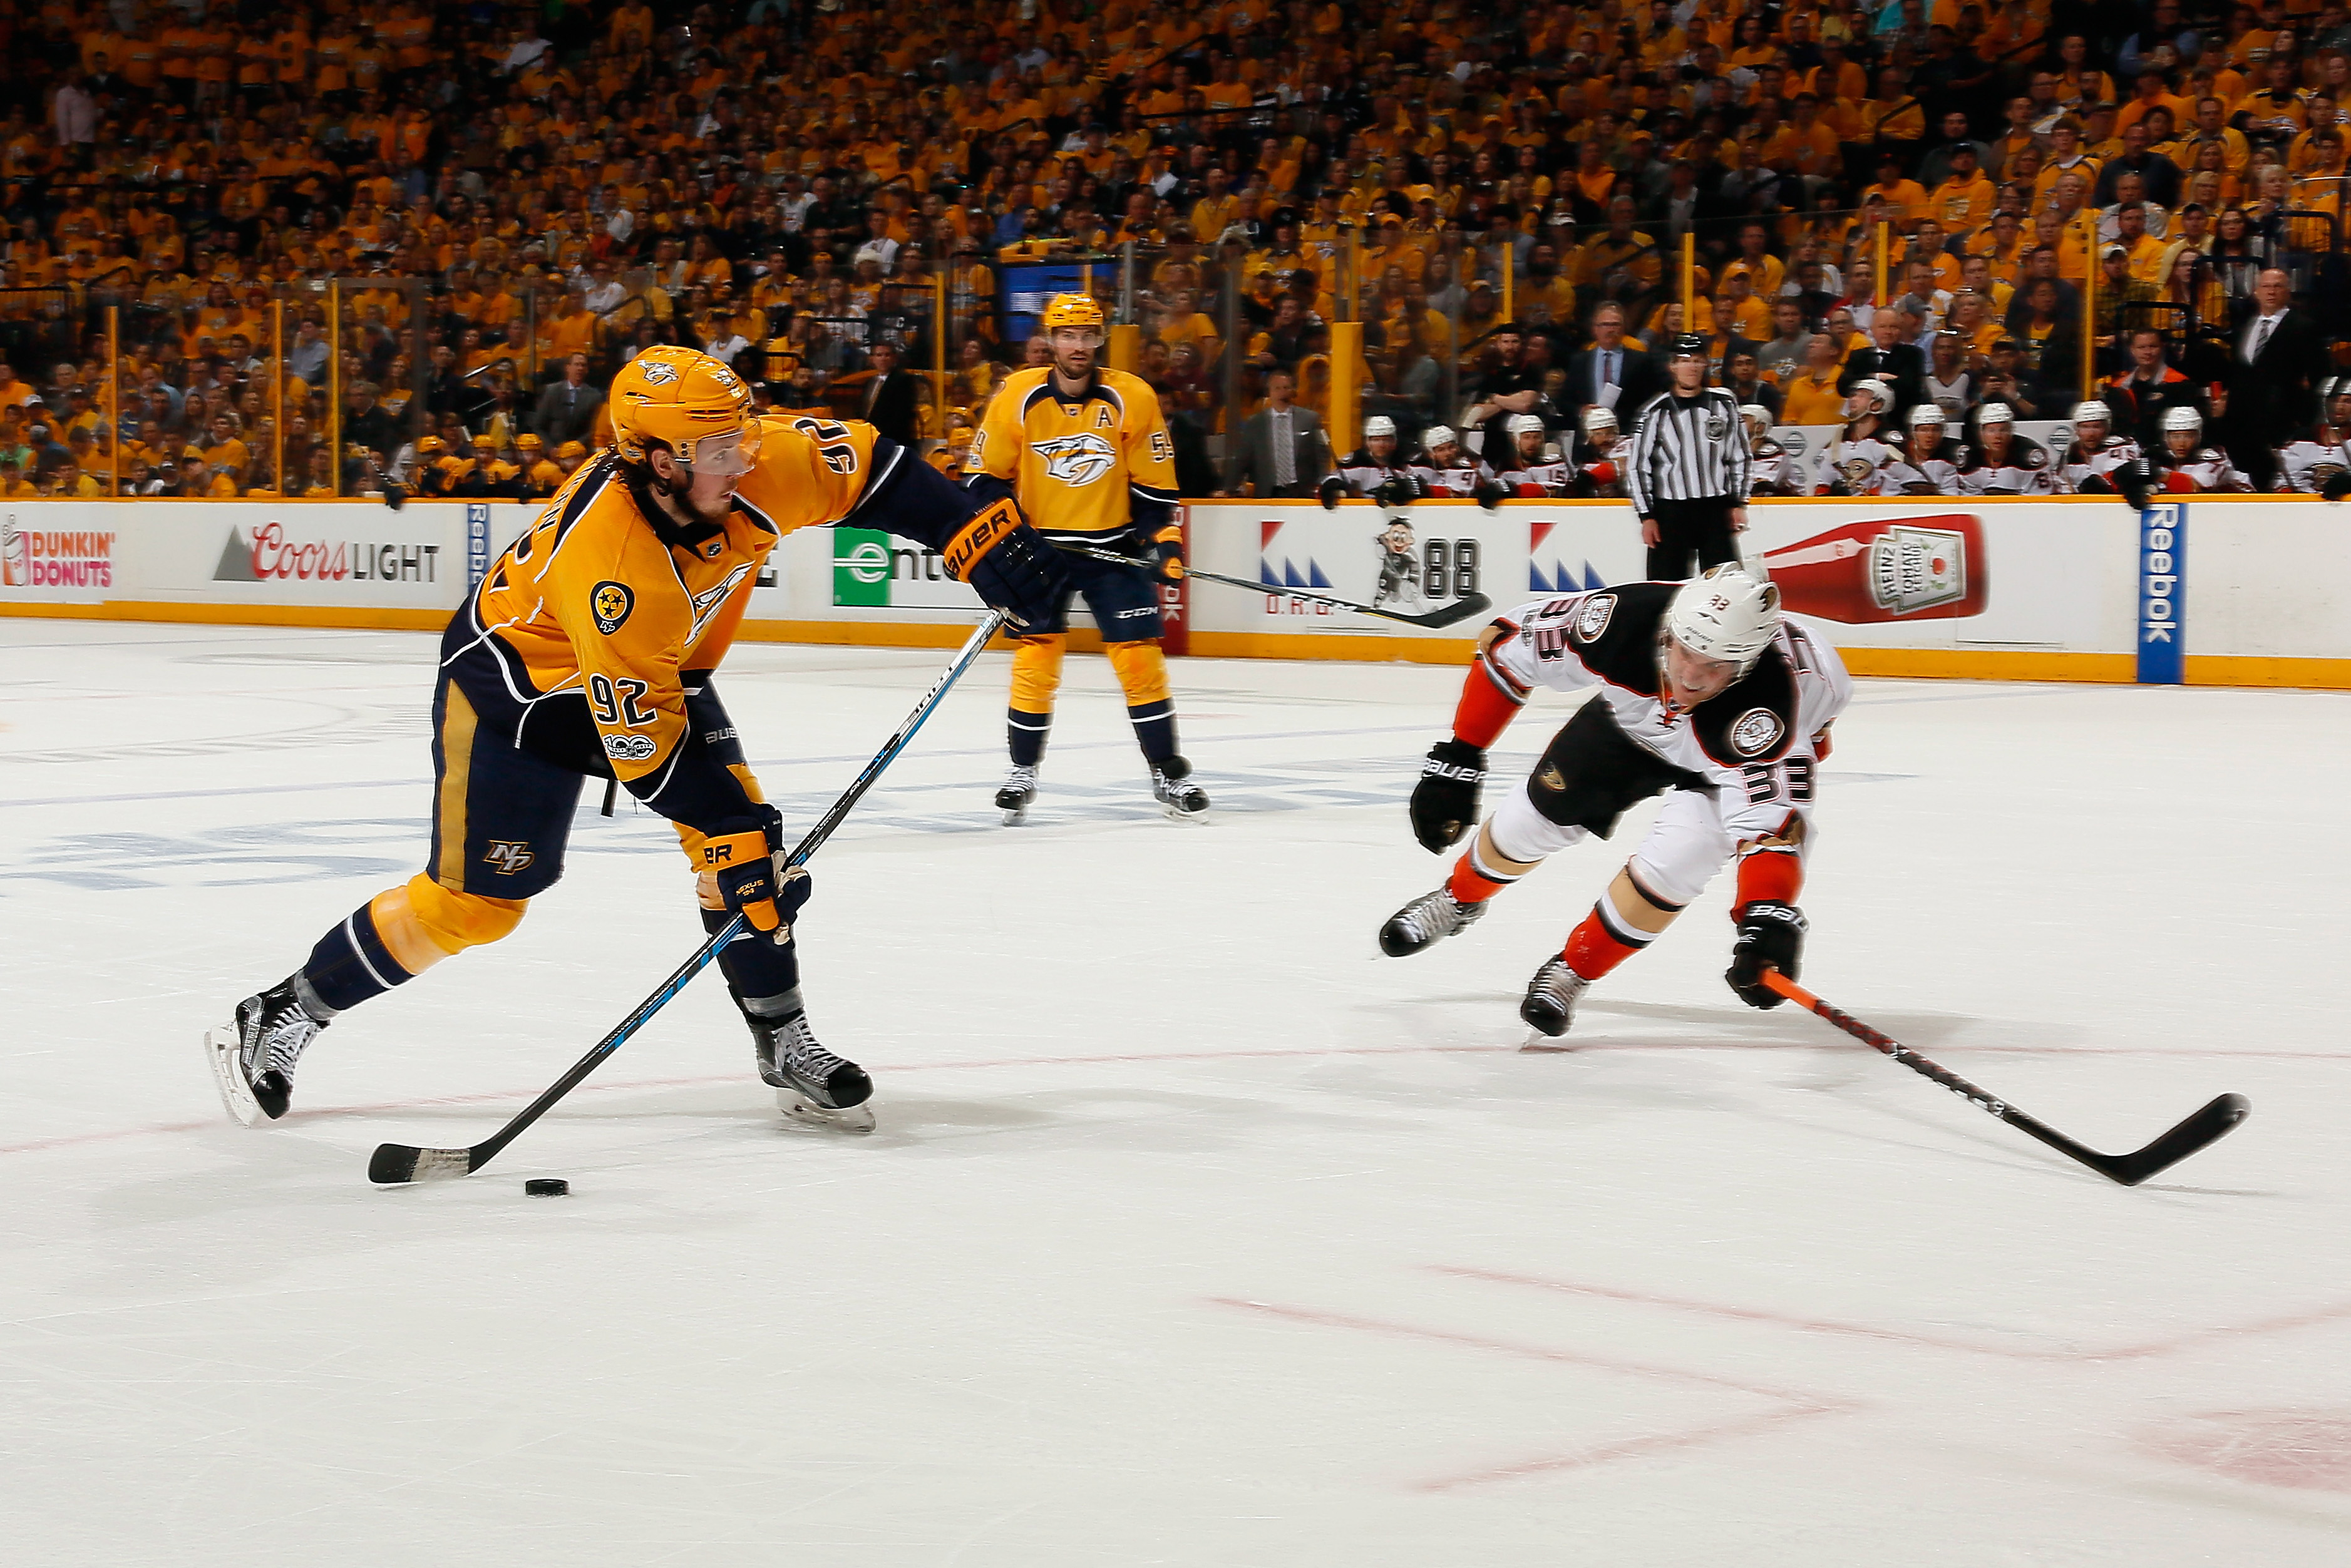 683953060-anaheim-ducks-v-nashville-predators-game-three.jpg